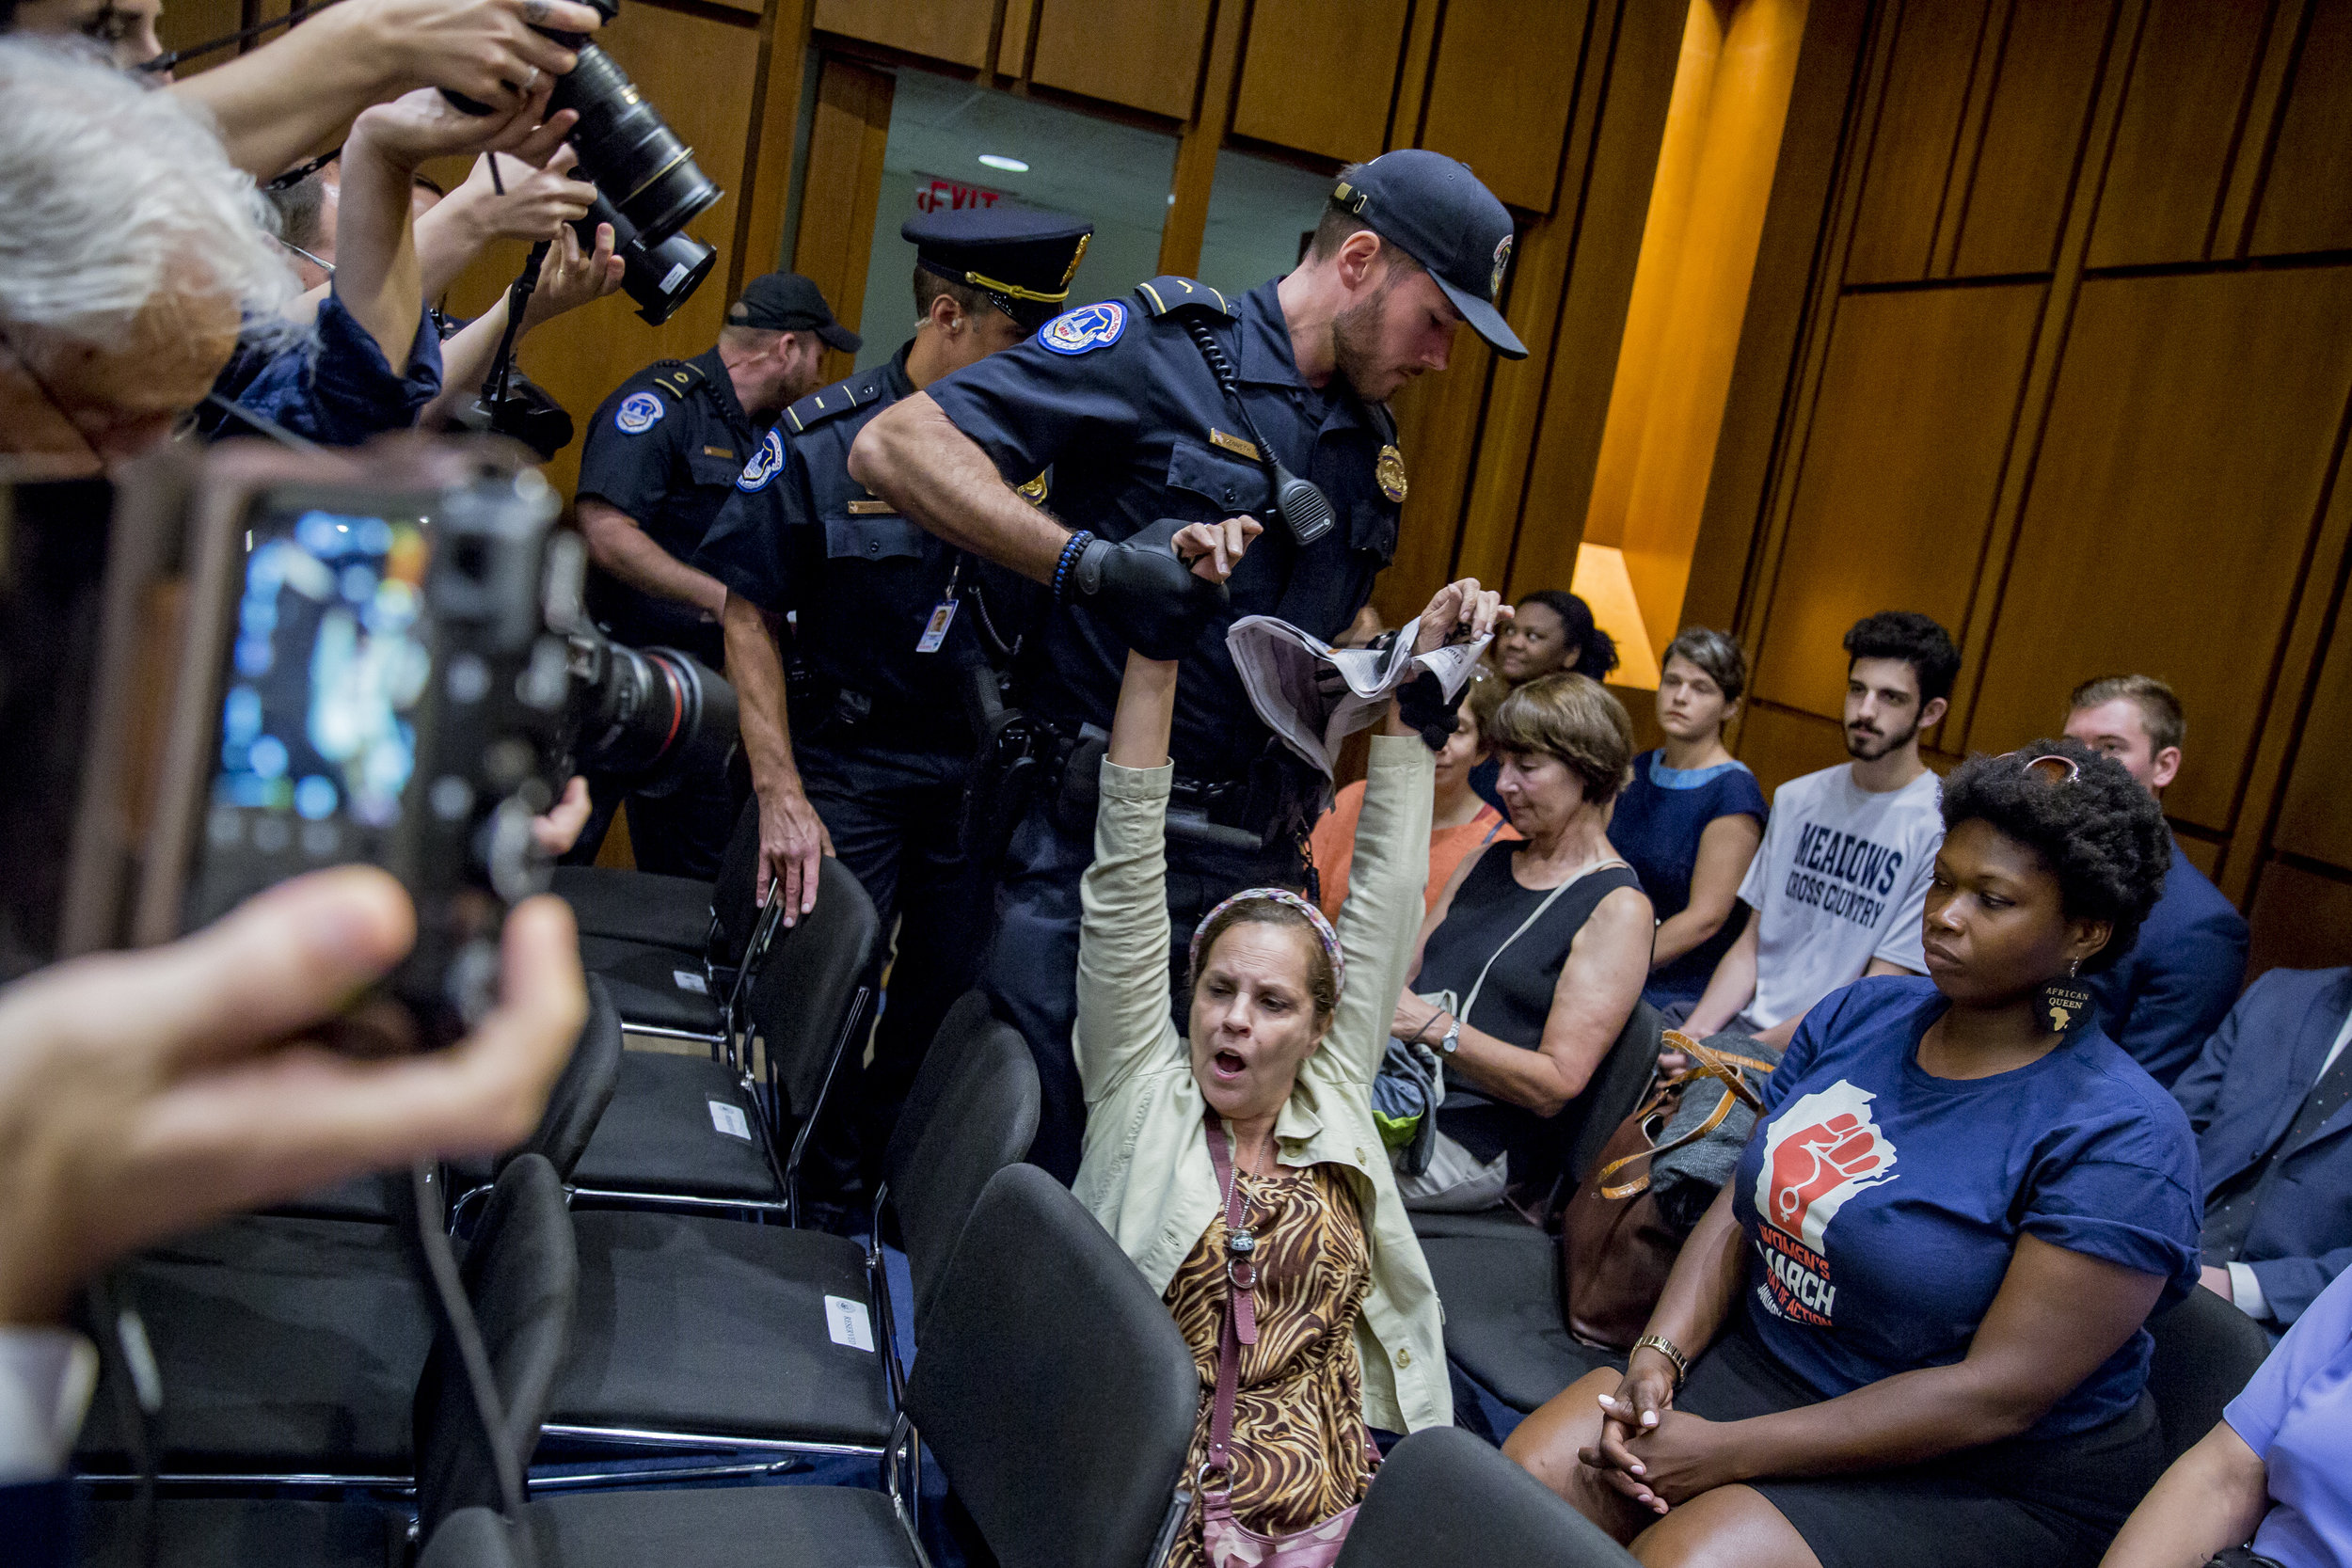 A protestor is removed from Senate Judiciary Committee hearing on September 5th, 2018